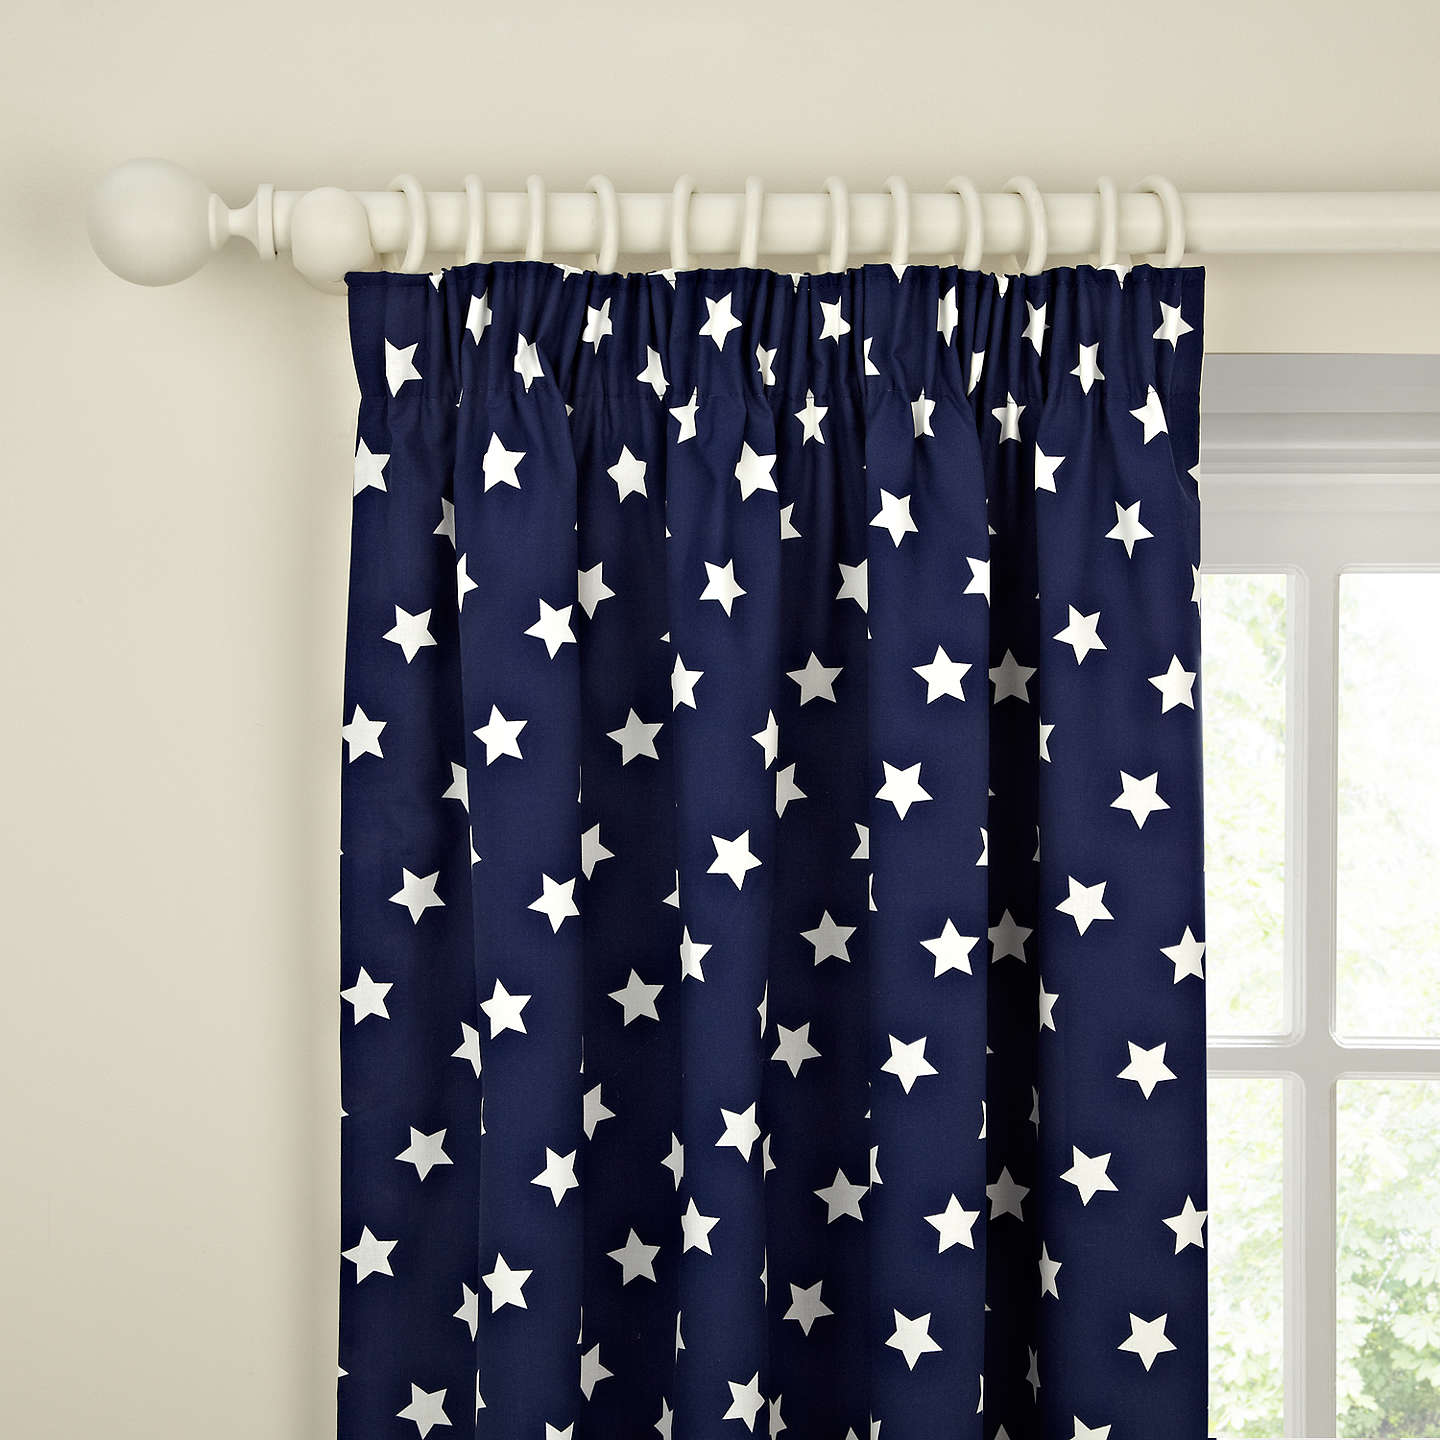 Buylittle home at John Lewis Glow in the Dark Star Pair Blackout Lined Pencil Pleat Curtains, Navy, W117 x Drop 136cm Online at johnlewis.com